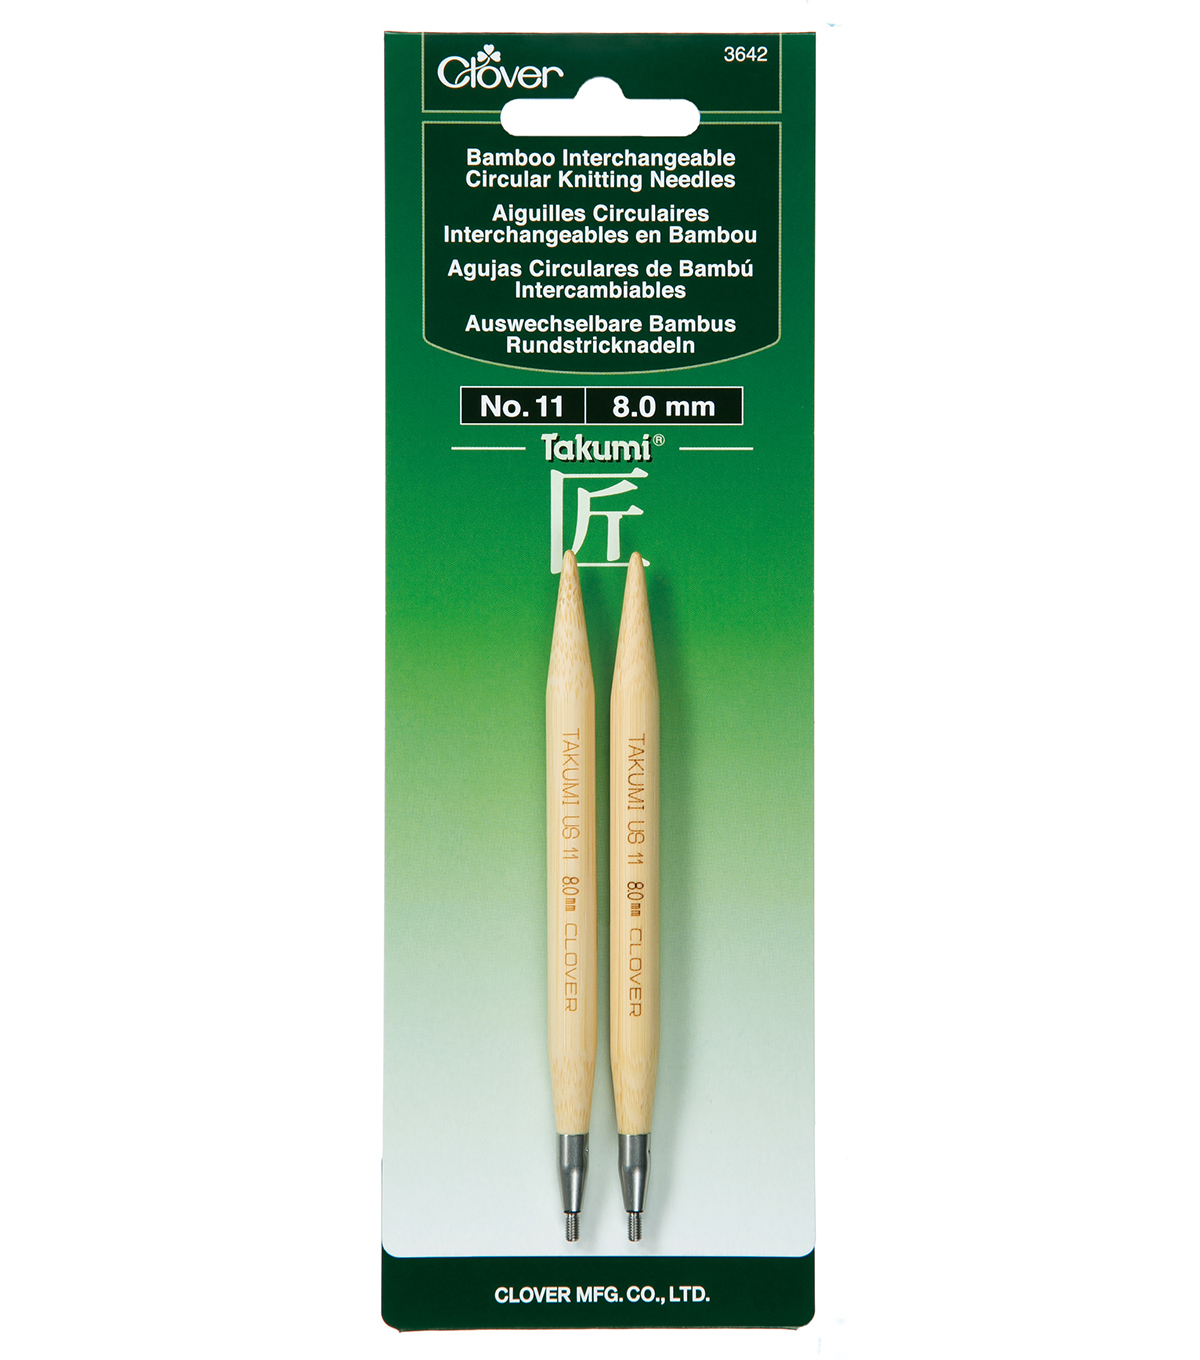 Clover Takumi Interchangeable Circular Knitting Needles Size 11/8mm